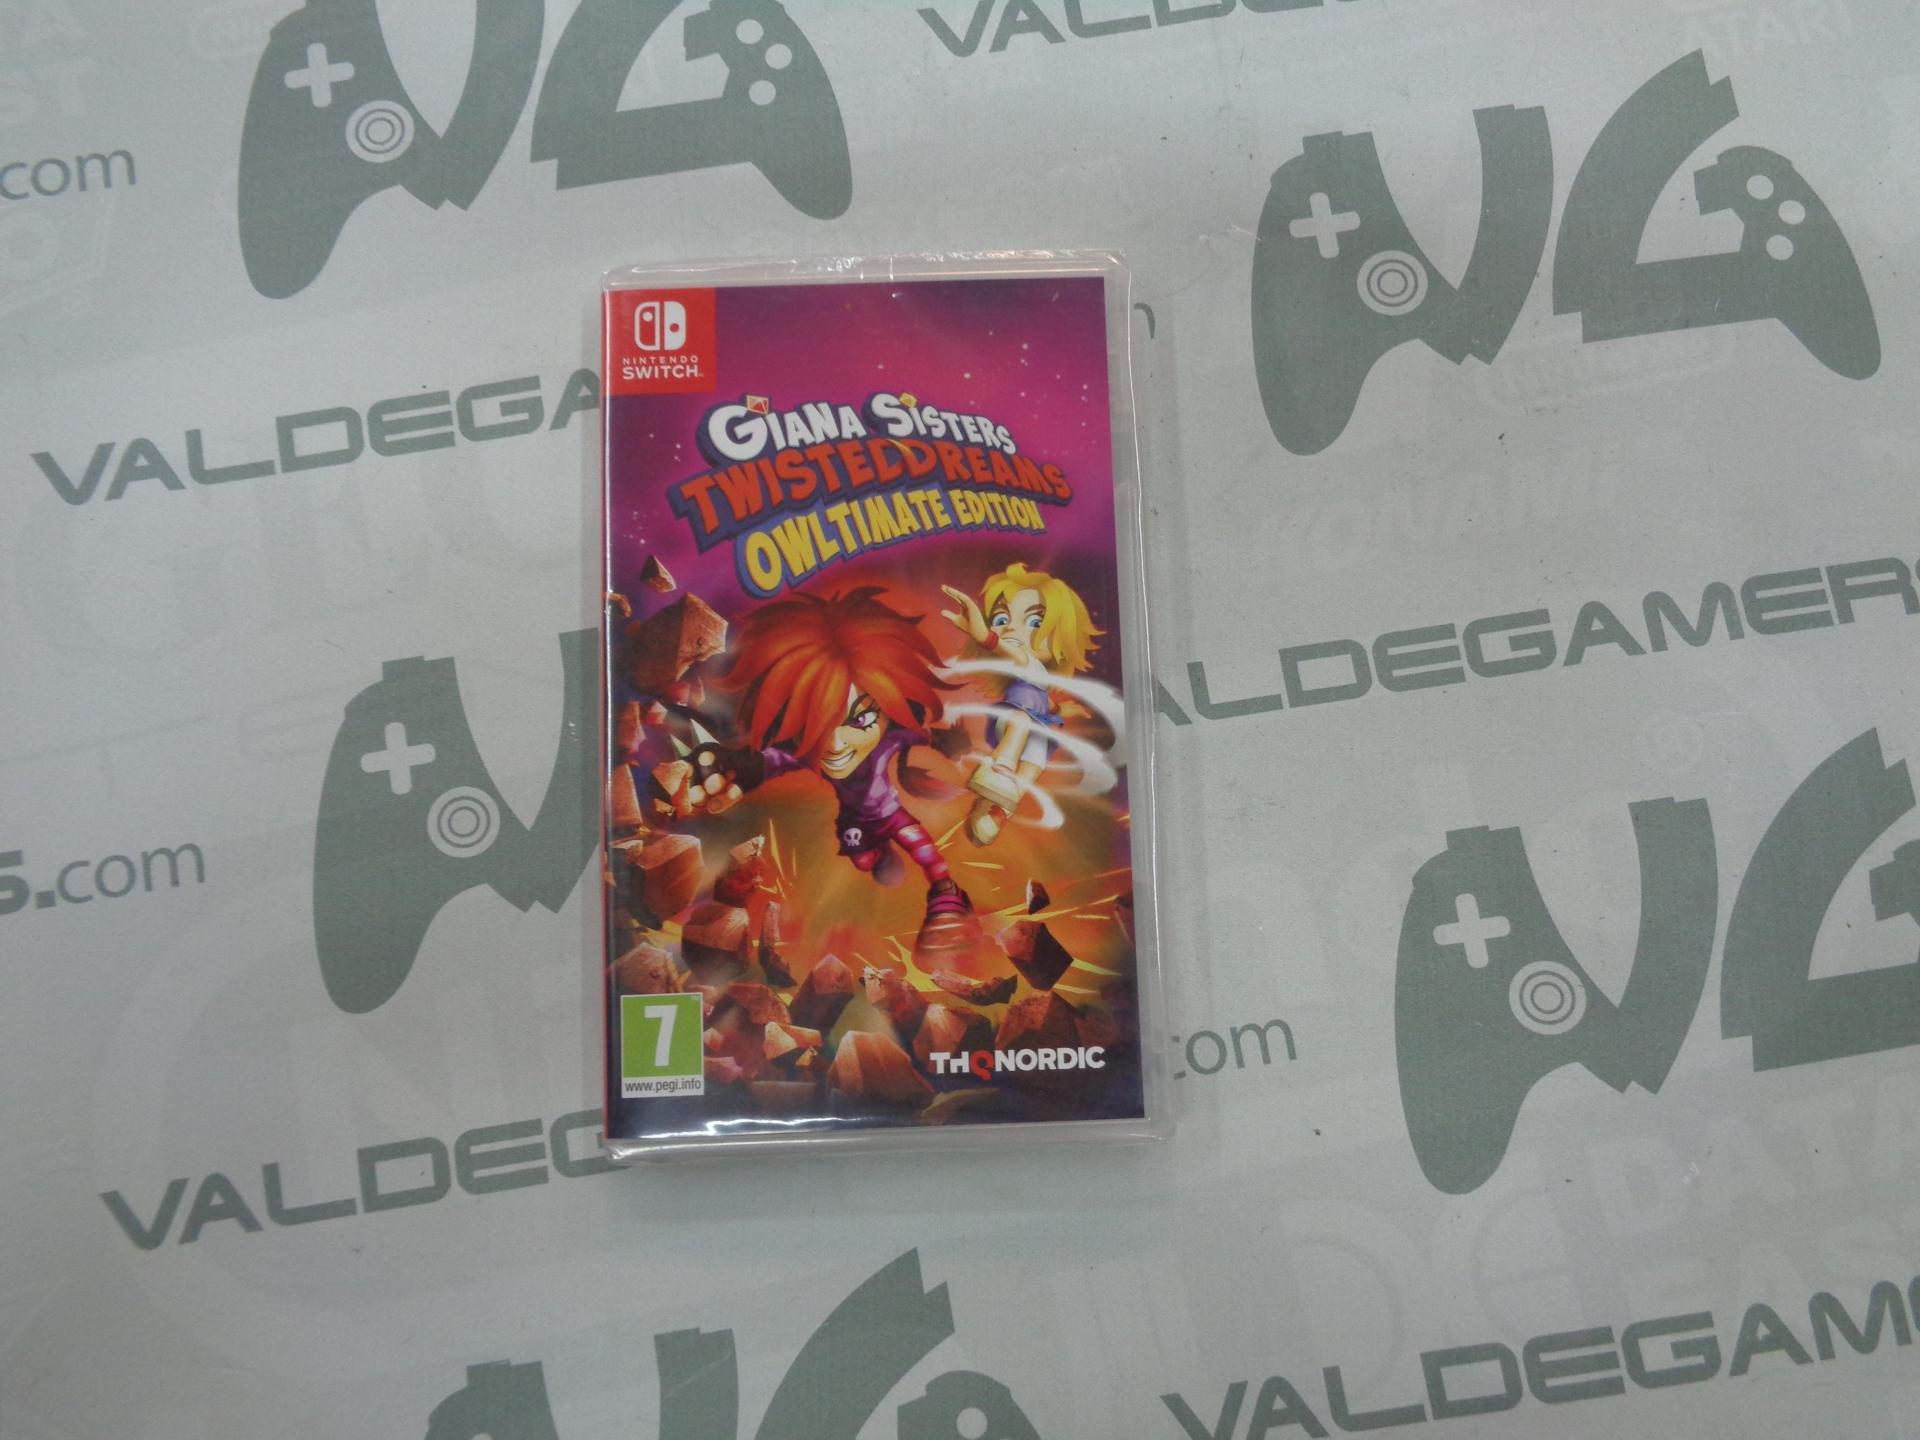 Giana Sisters : Twisted Dreams - Owltimate Edition - NUEVO